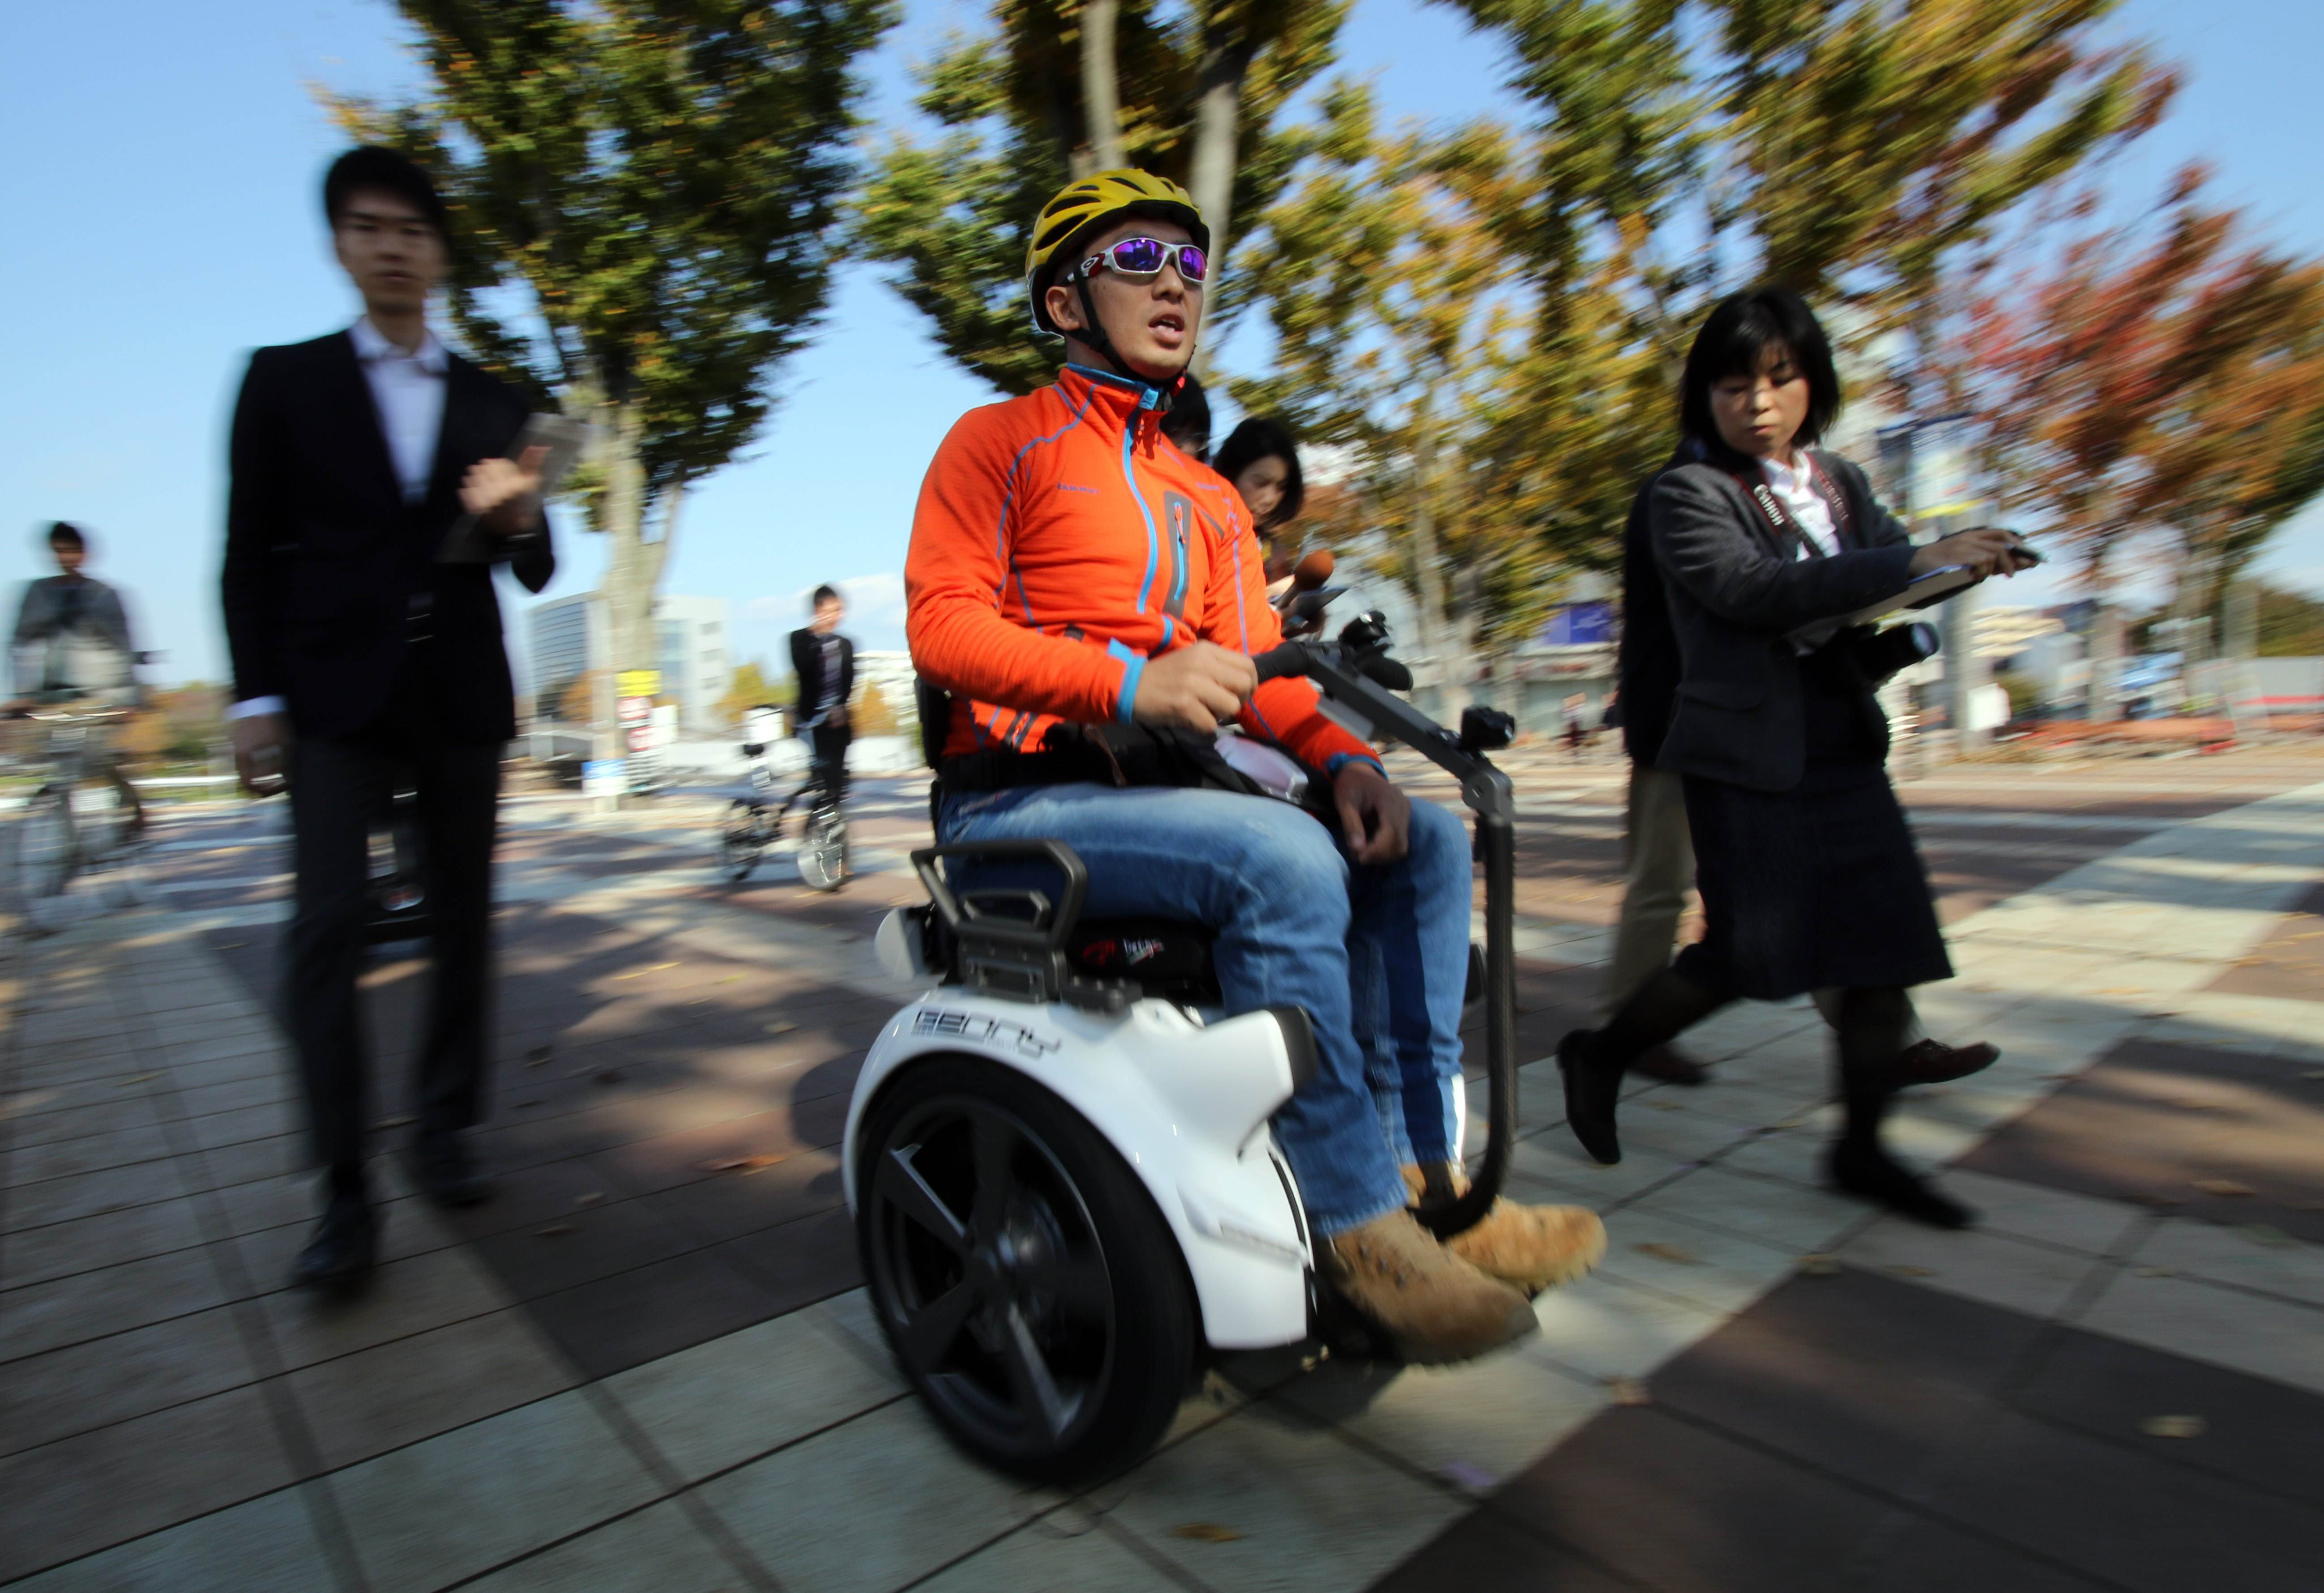 Segway Wheelchair Begins Trials On Japanese Streets The